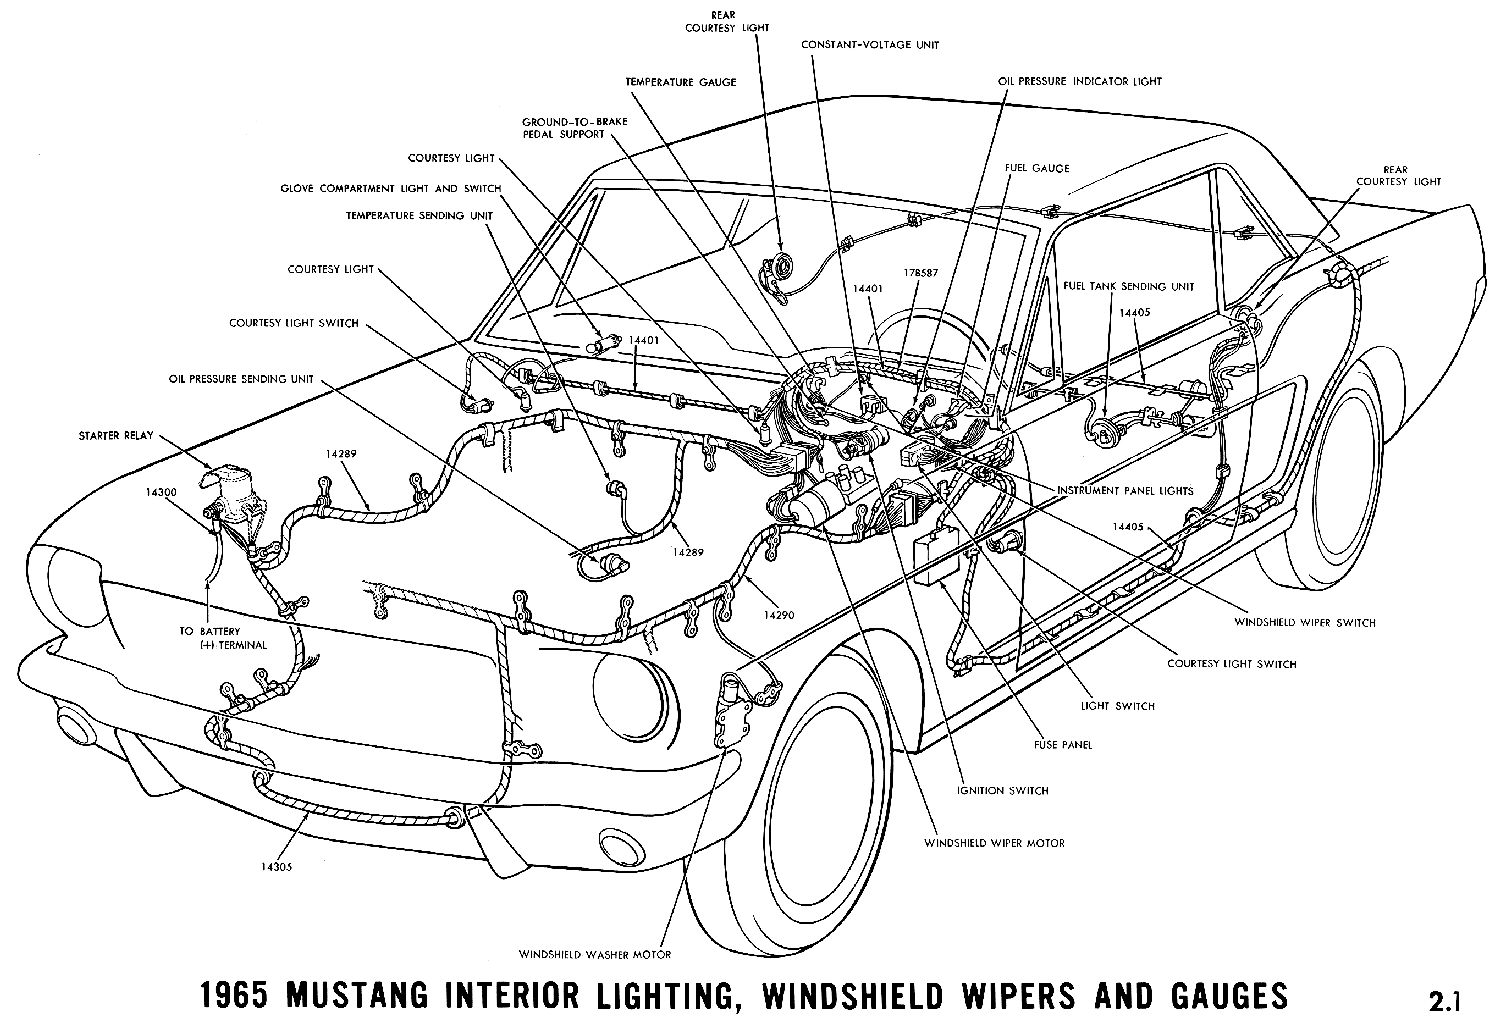 1965 Mustang Wiring Diagrams Average Joe Restoration A Fuel Gauge 1965f